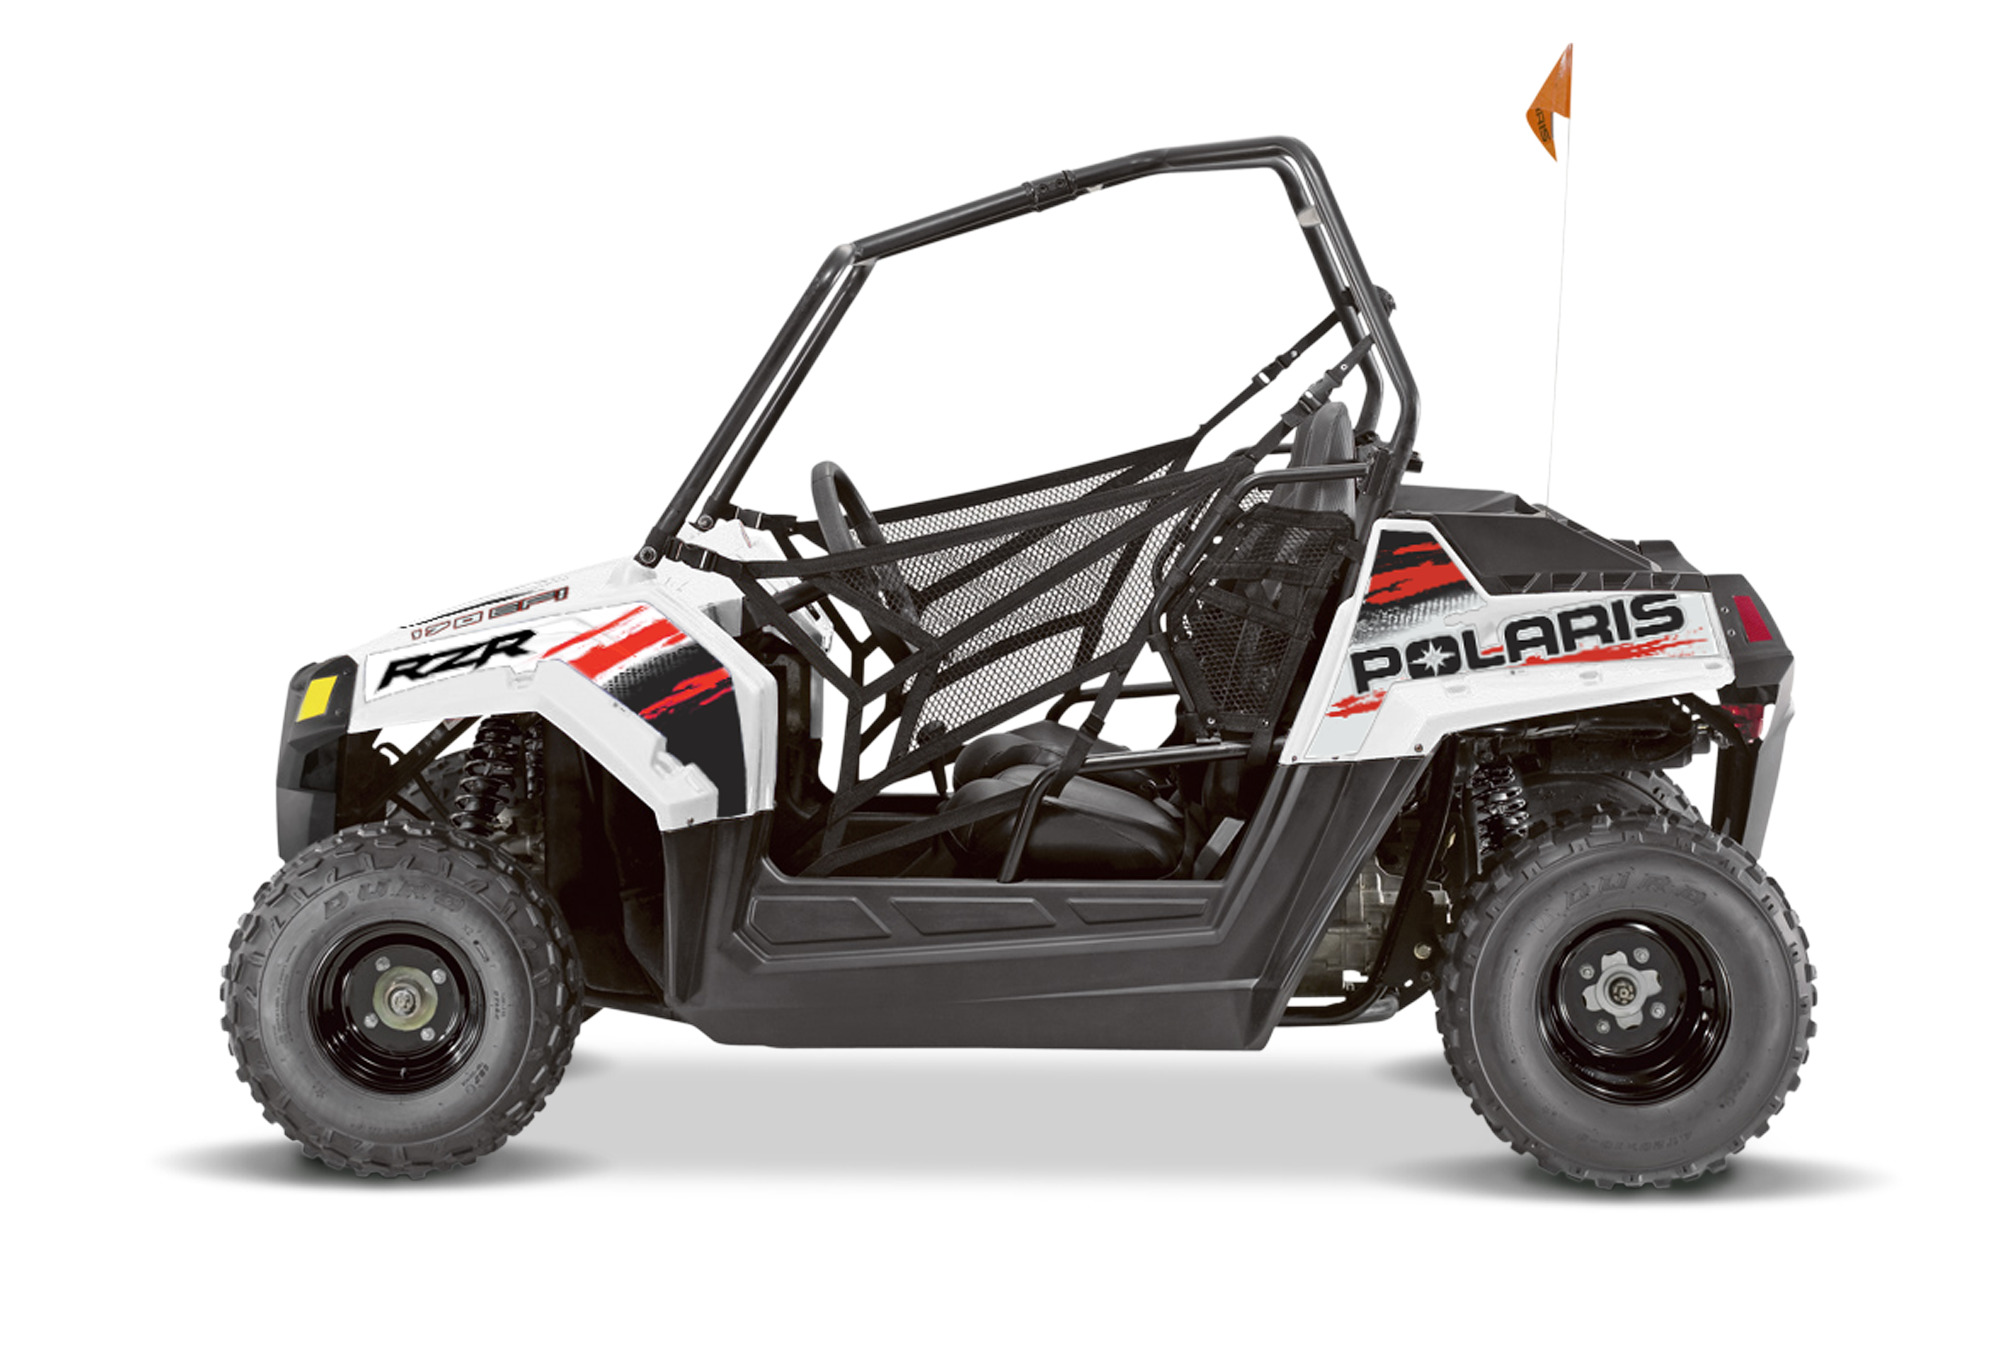 06aff66d9aa Polaris Recalls RZR 170 Recreational Off-Highway Vehicles Due to ...